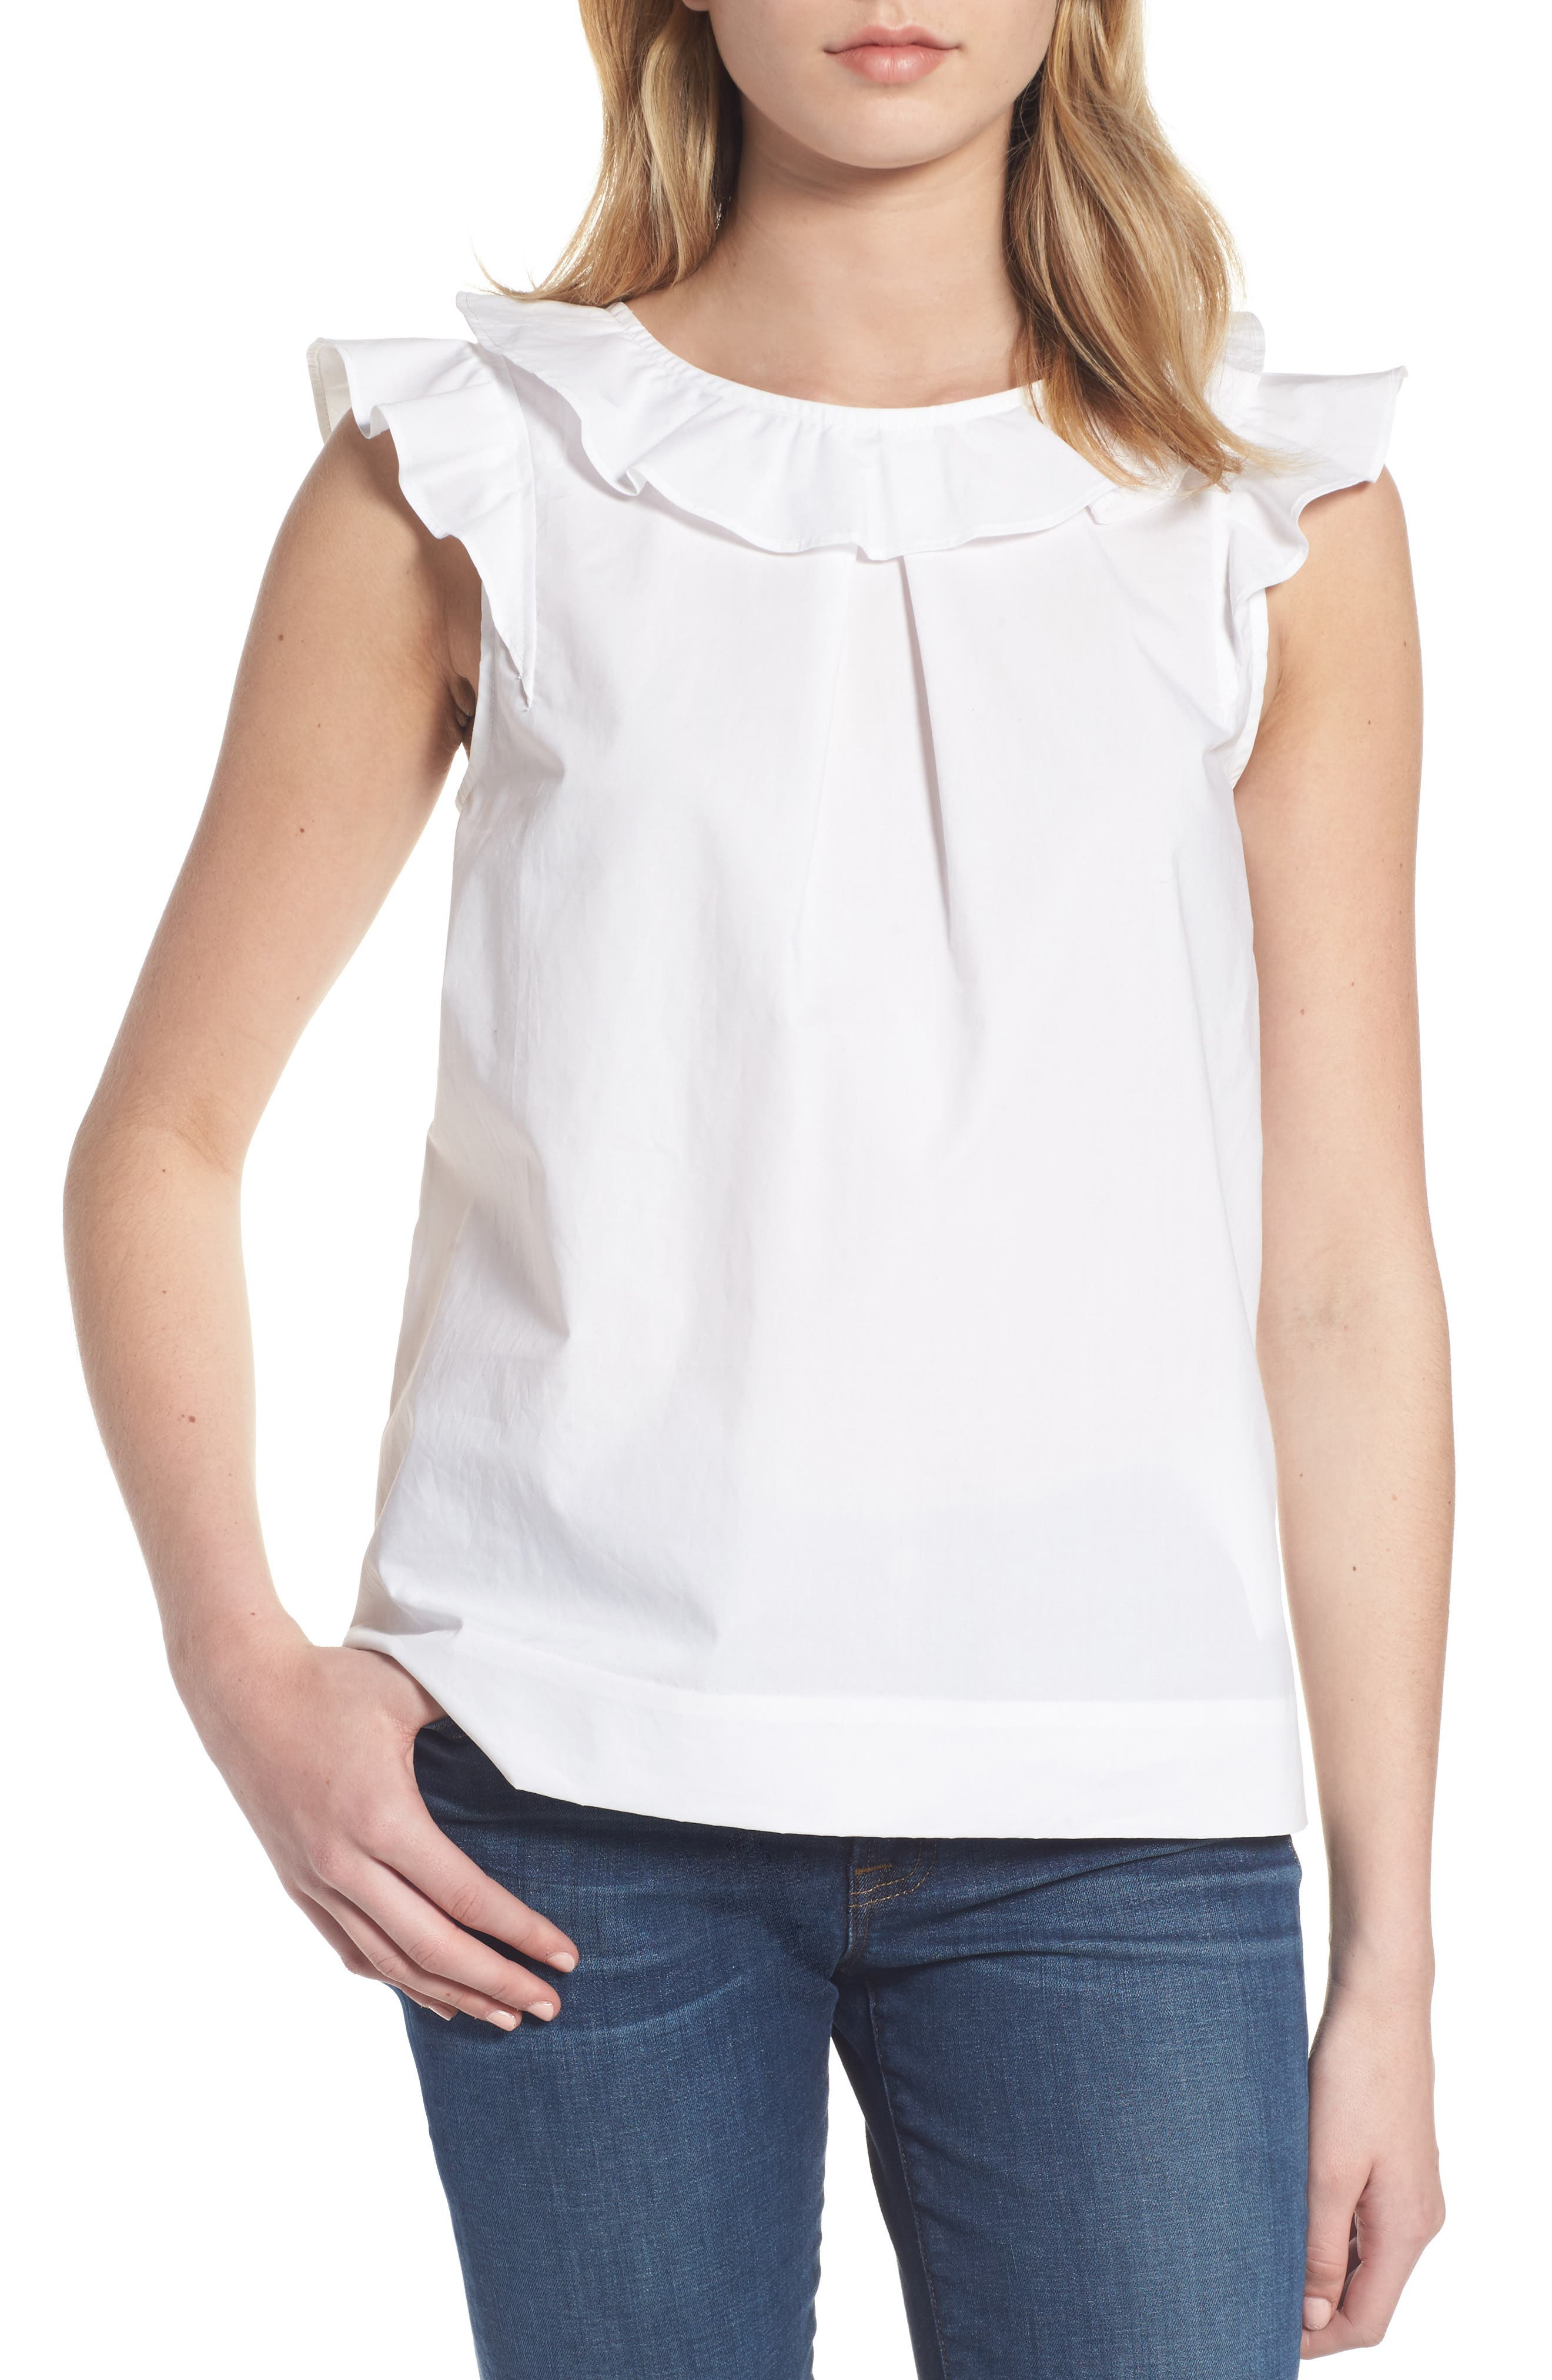 J.Crew Ruffle Cotton Poplin Top (Regular & Petite)